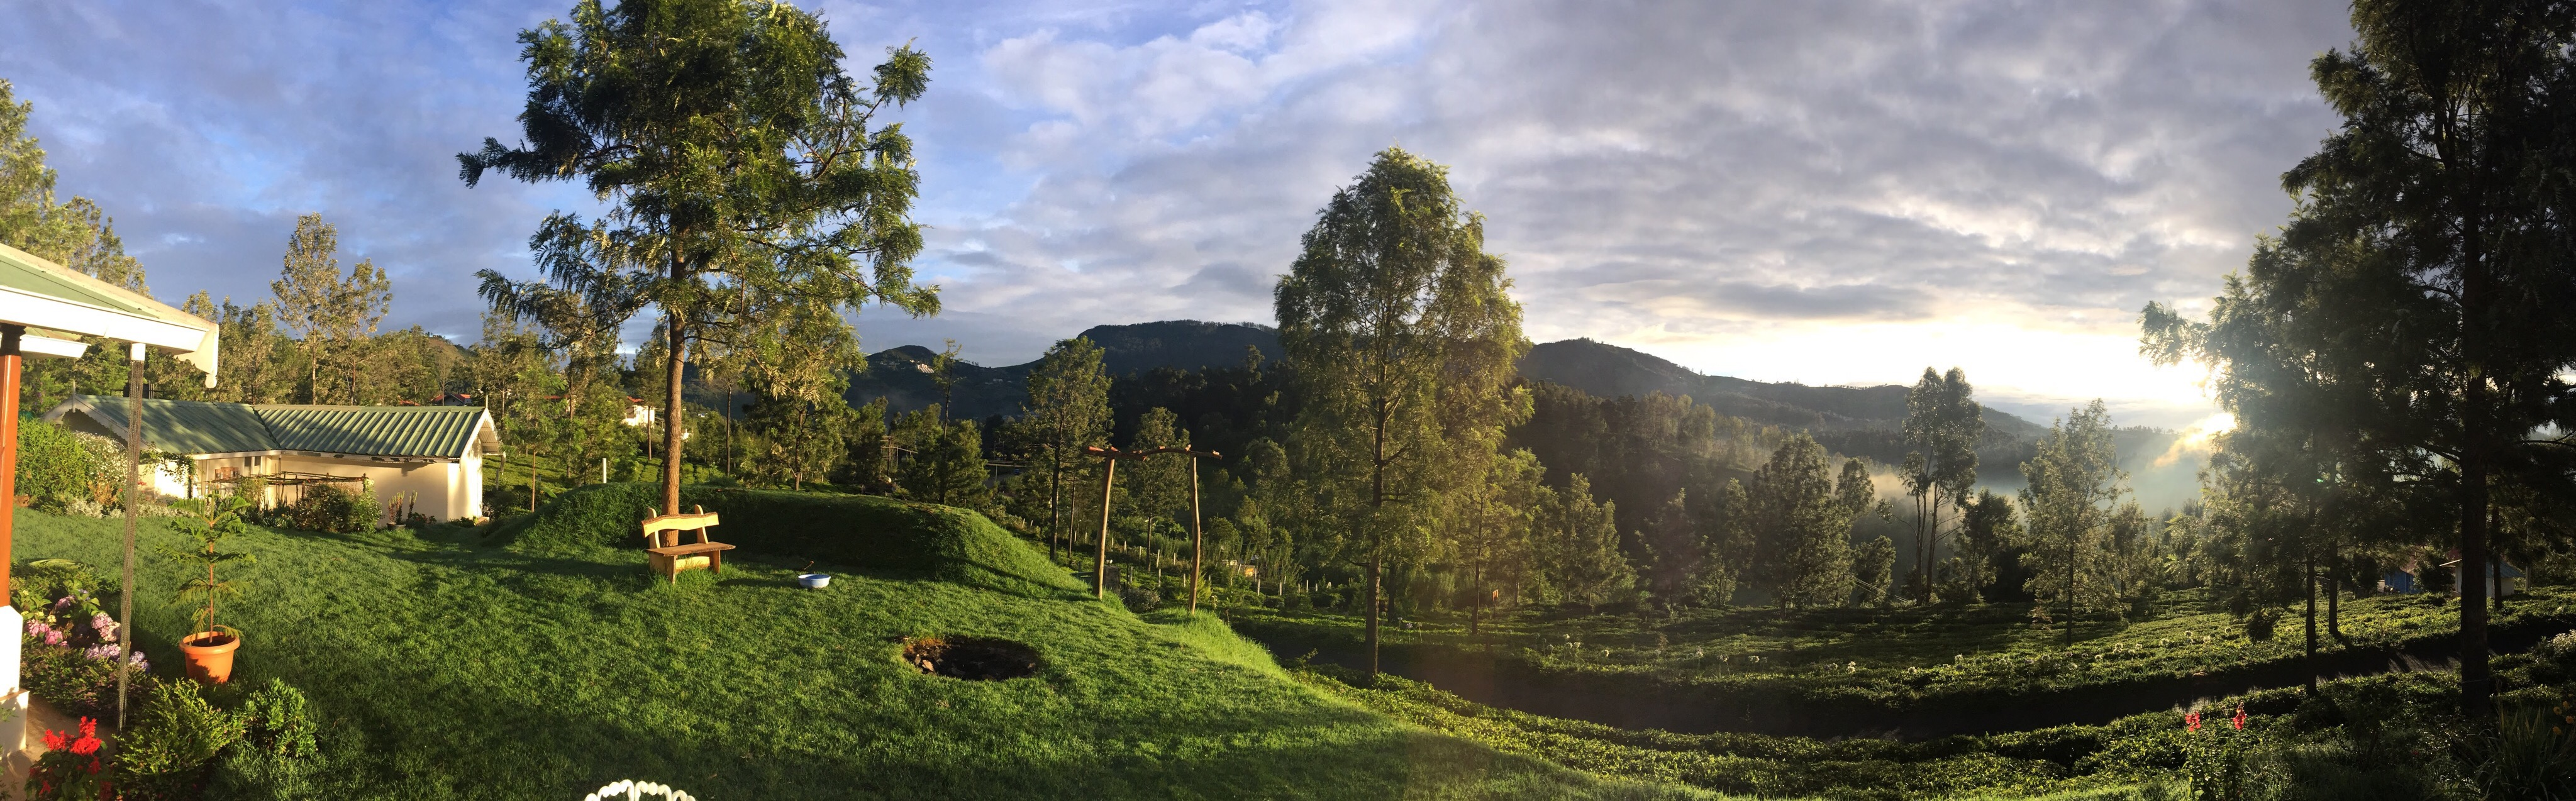 trip to ooty 4 day trip to ooty from bengaluru: checkout 4 day trip plan for ooty covering 25 attractions, popular eat-outs and hotels, created on 23rd jul 2016 it includes the visit to government botanical gardens, stone house and nearby attractions.